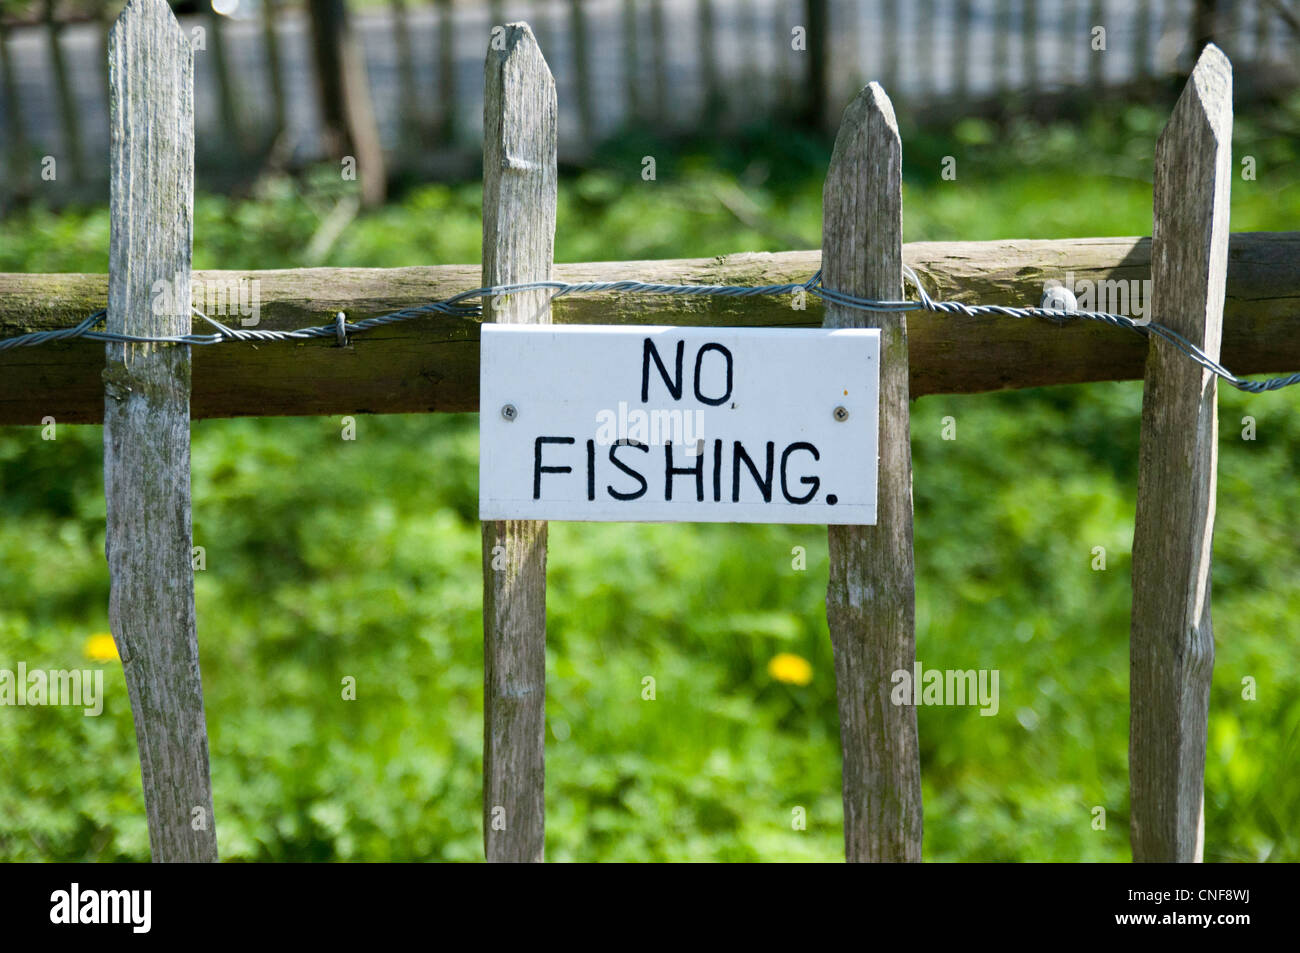 no fishing sign on towpath fence at powder mill lock - Stock Image